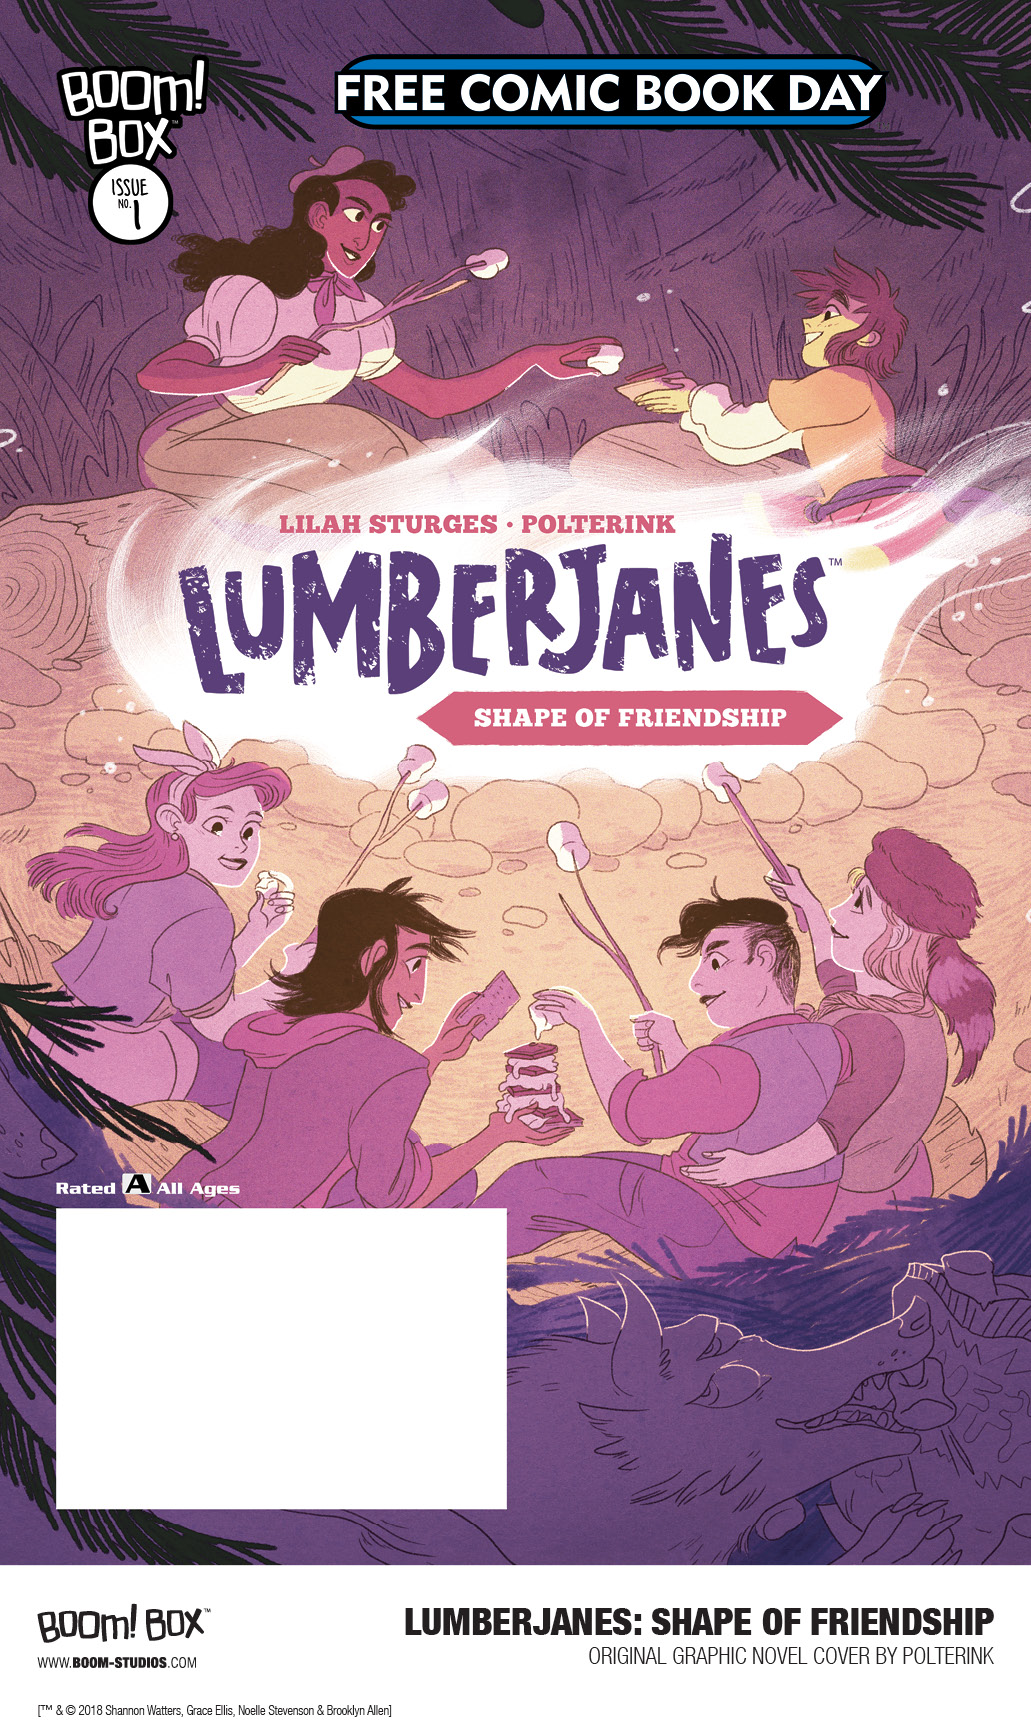 Lumberjanes - Shape of friendship FCBD